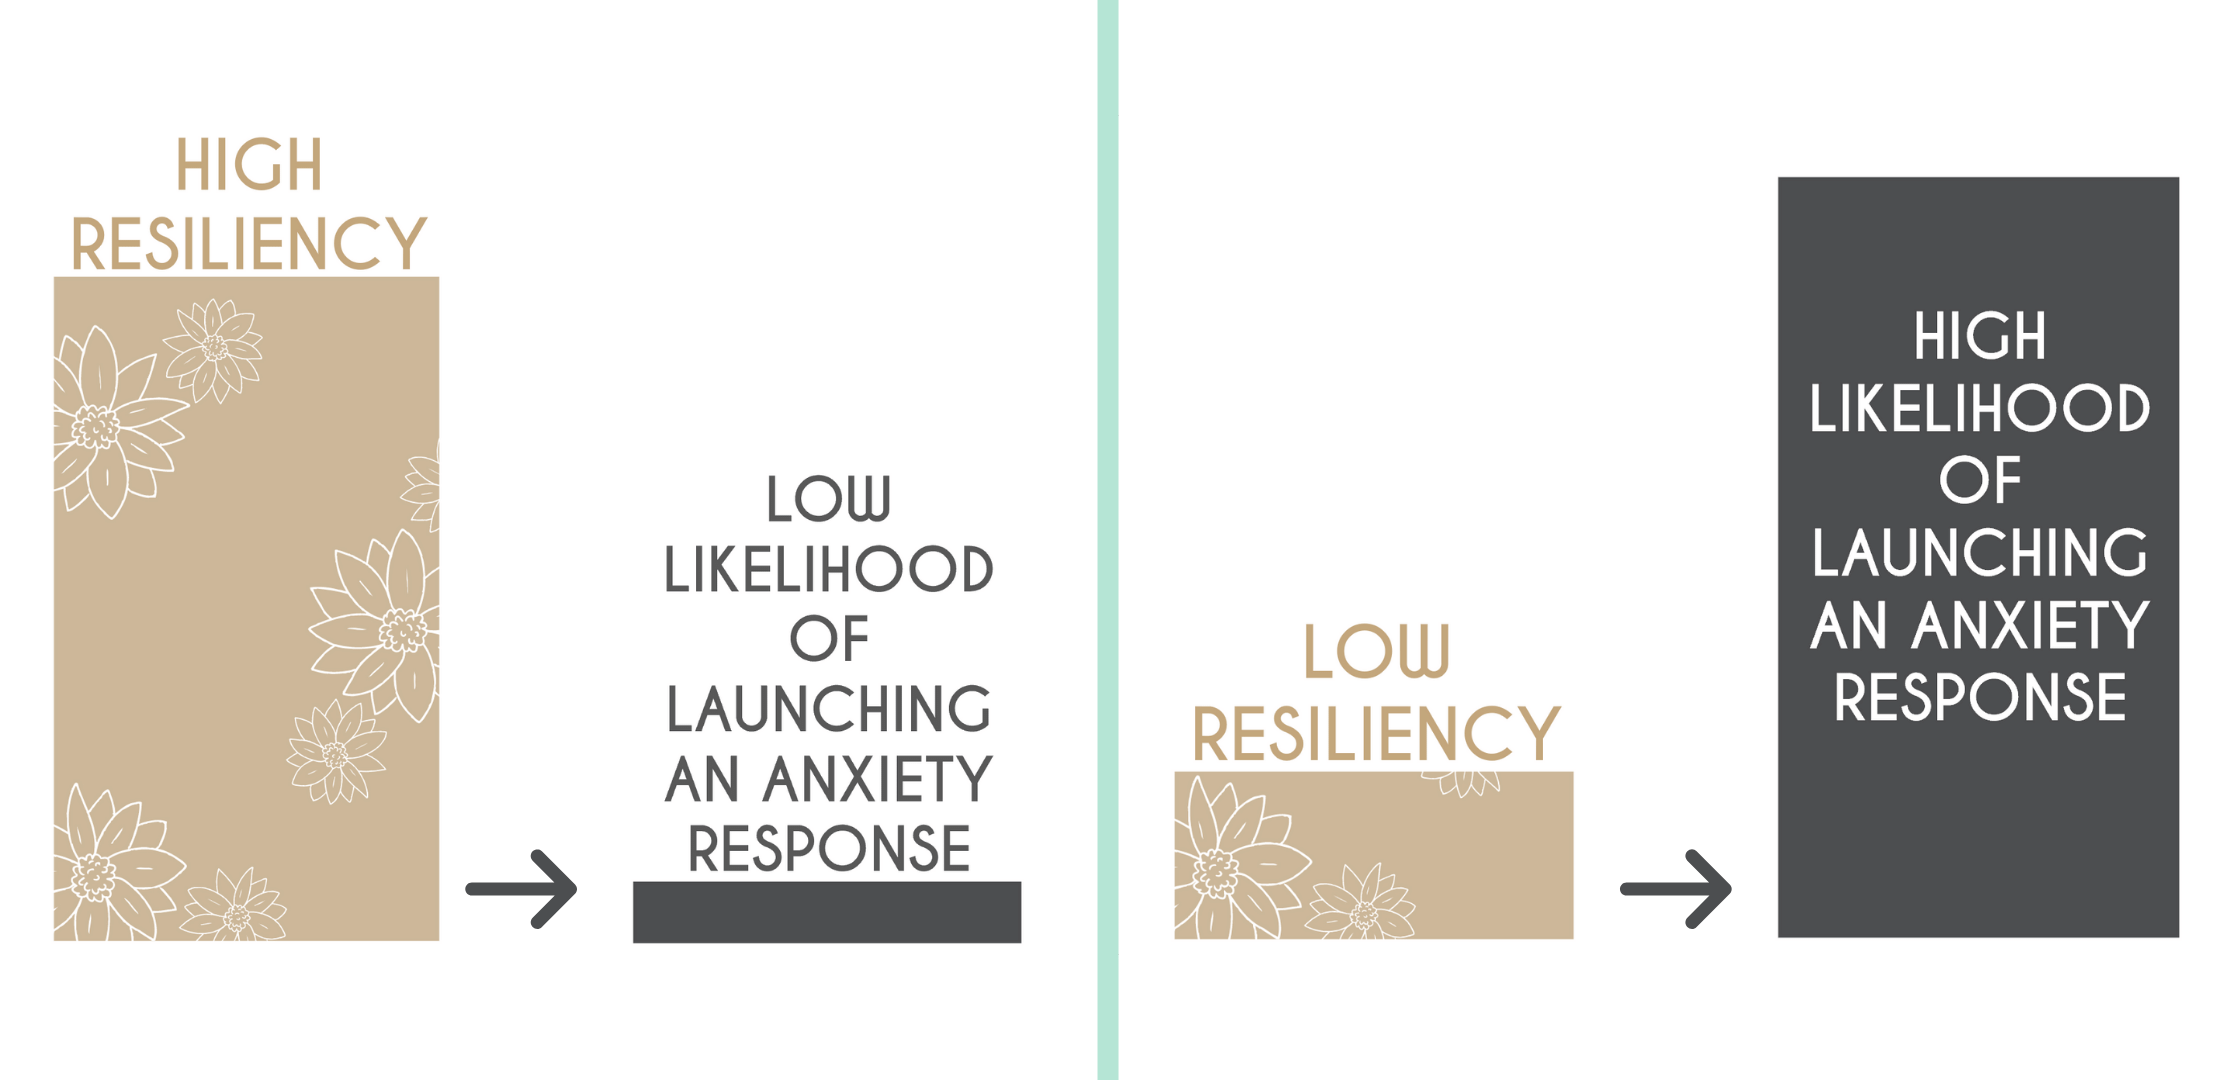 Anxiety resiliency